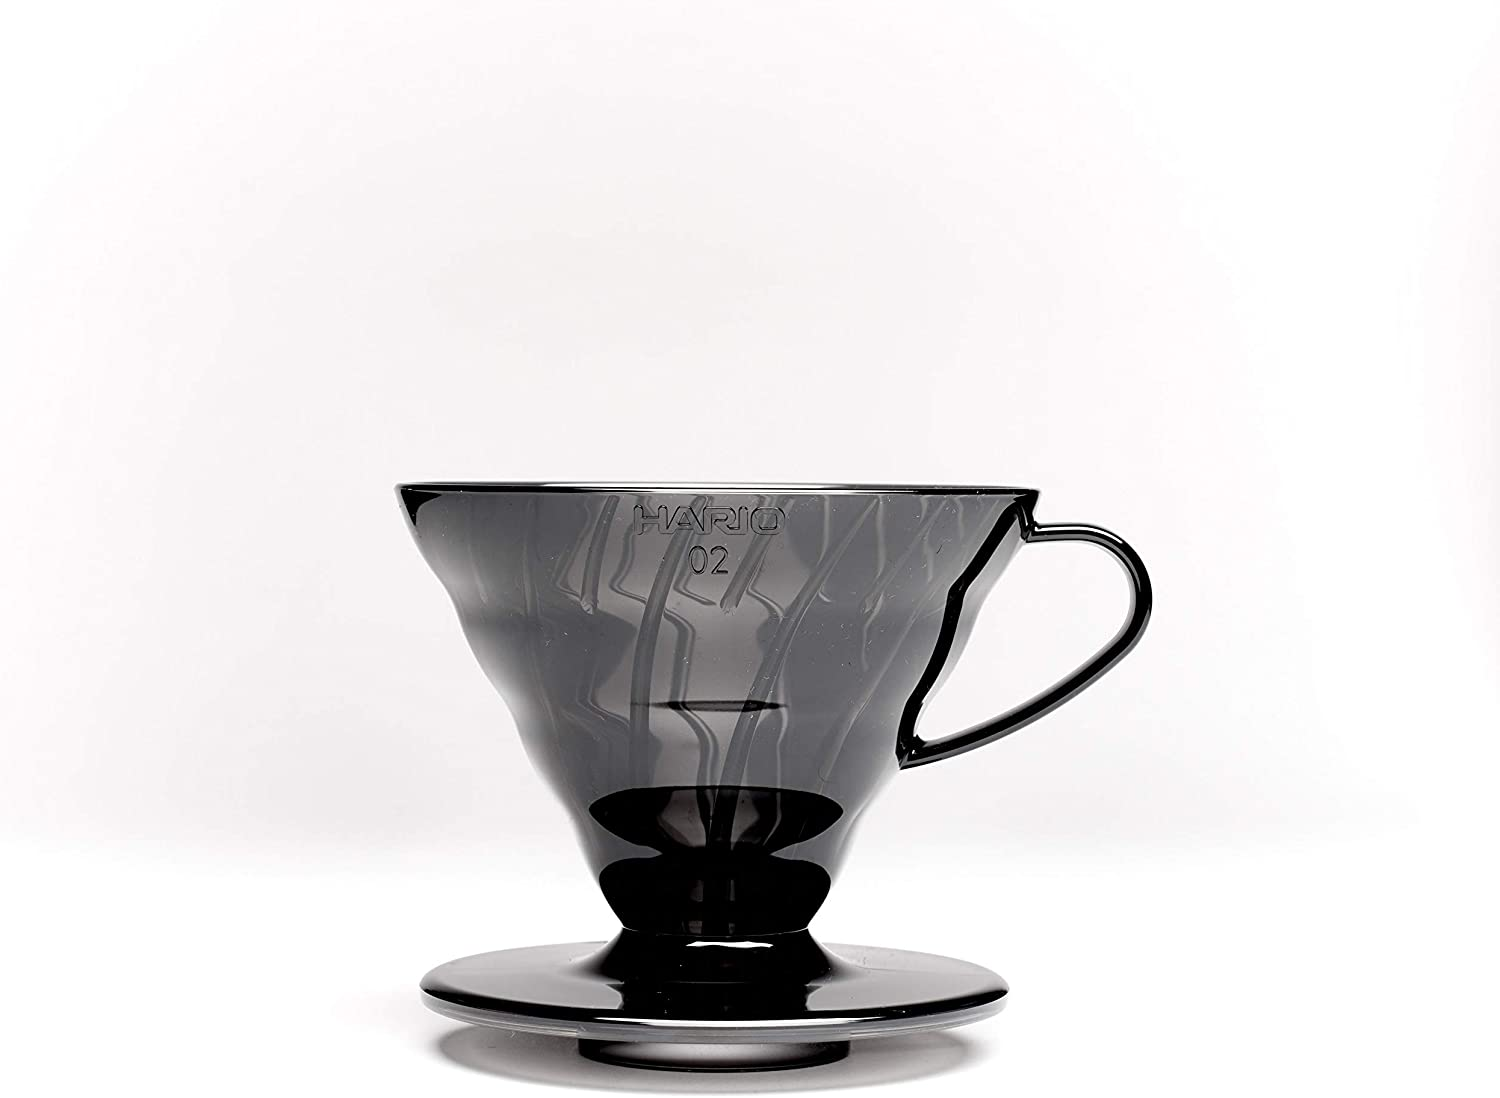 Scoop HARIO V60 Black Dripper with Paper Filters 40 Pack